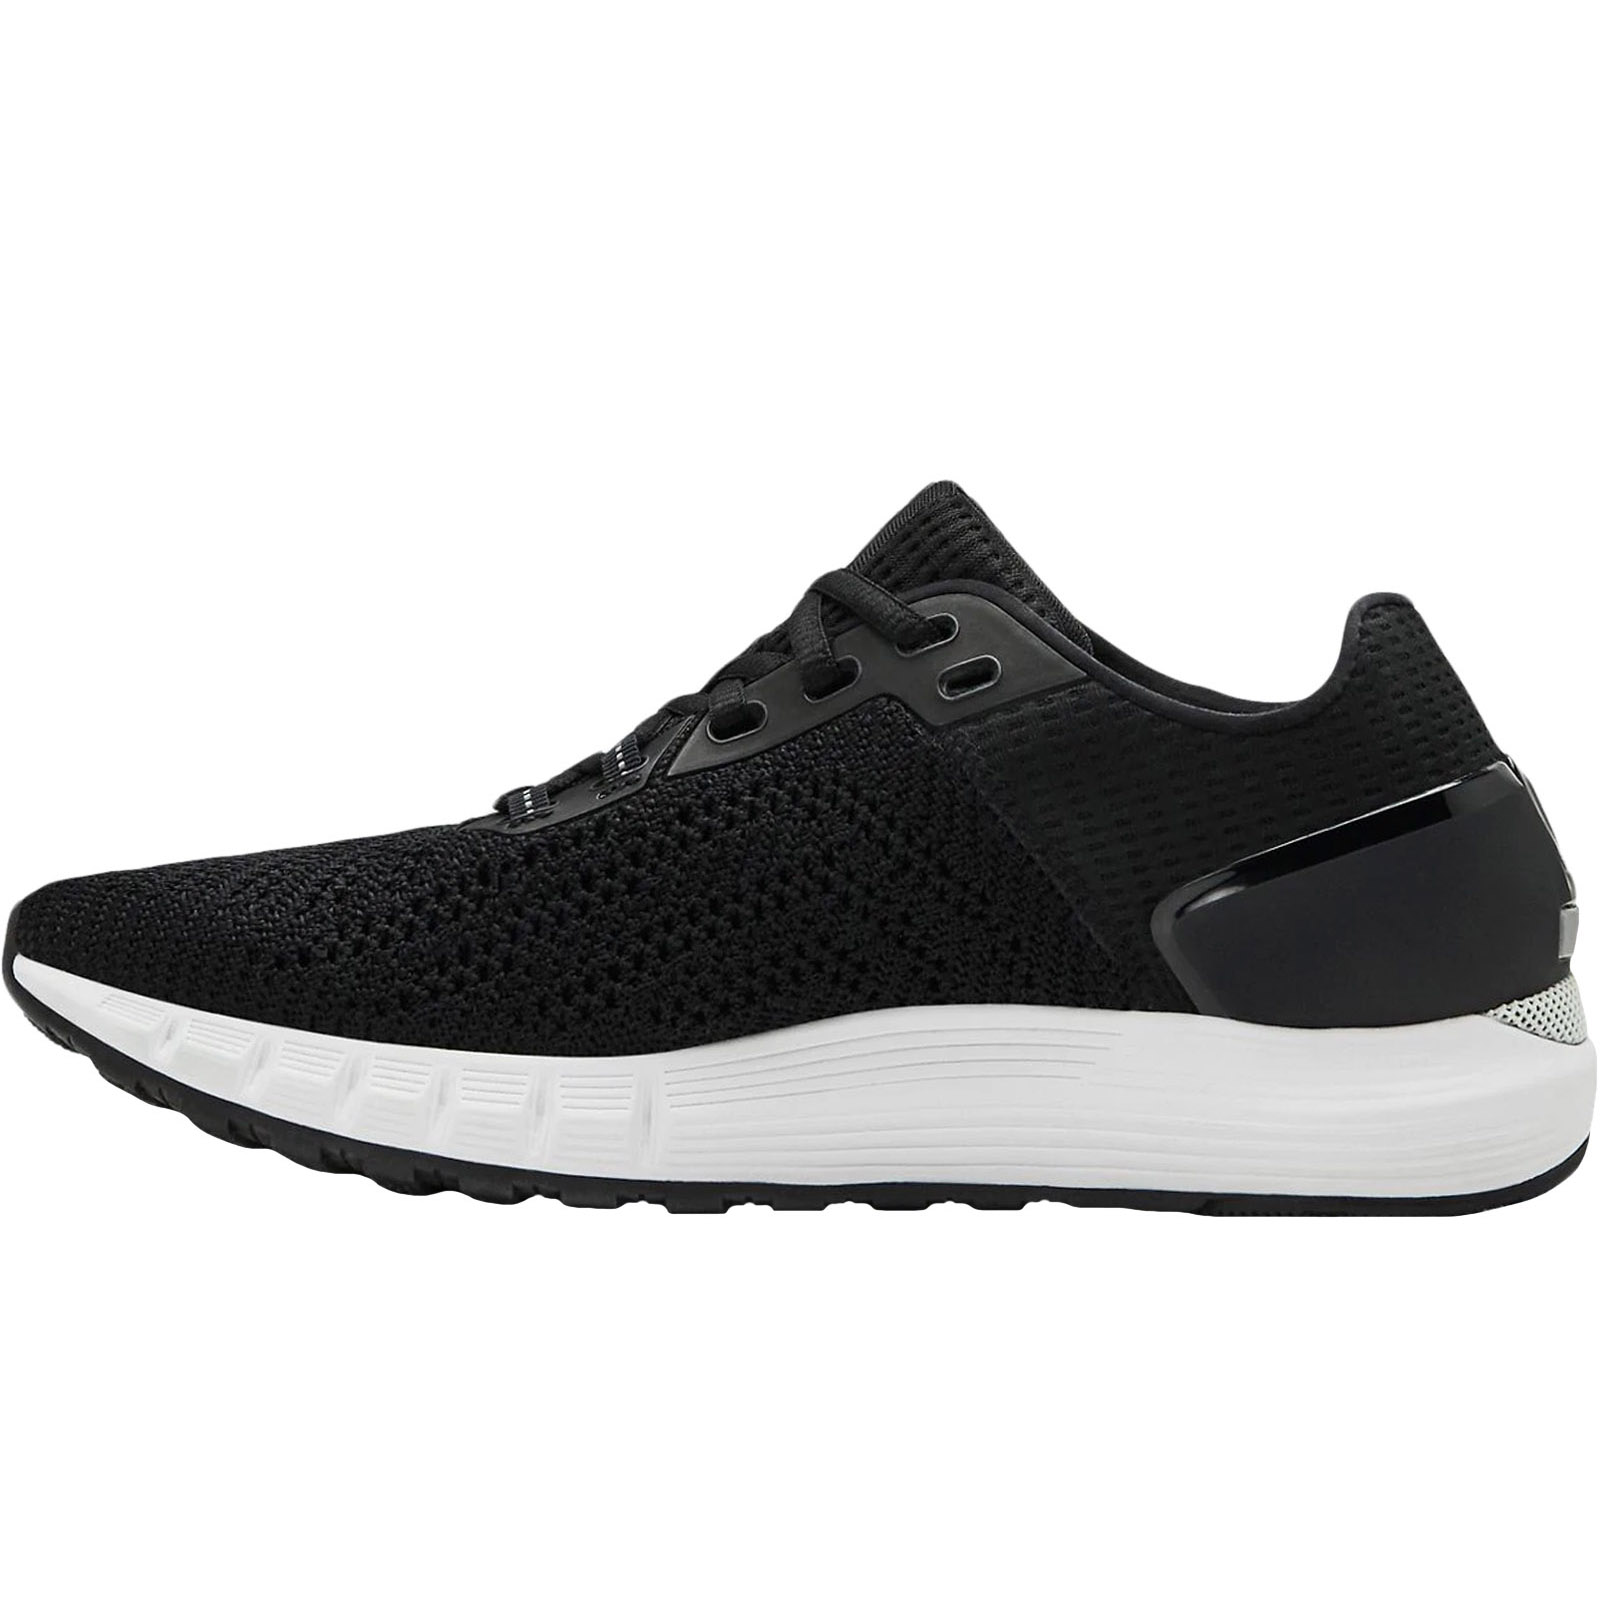 Under Armour Womens HOVR Sonic 2 Connected Tracking Running Trainers 4 UK